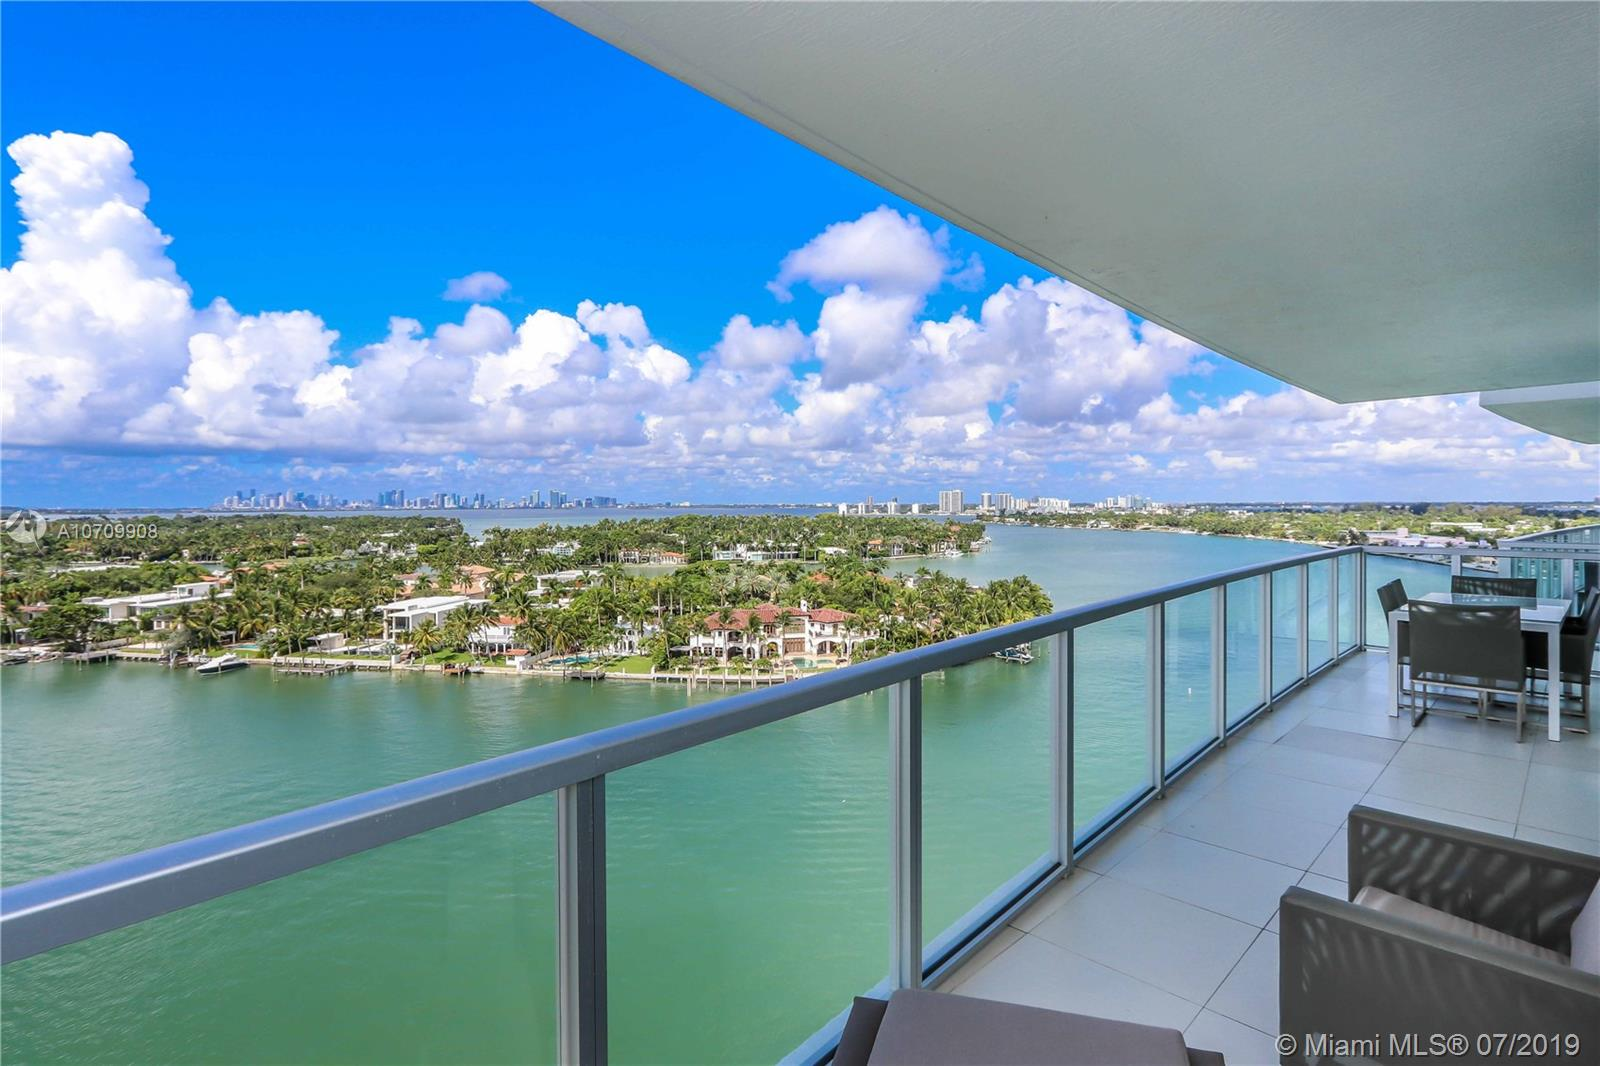 PLEASE MAKE SHOWING REQUESTS AT LEAST WITH MINIMUM  24 HOURS NOTICE. Best Intracoastal exposure for a 2 bedroom 2 baths in the building with direct water views from every room!. The perfect spot for amazing sunset views from your tranquil and expansive terrace. Tastefully furnished and ready to move in!. Excellent location just a few steps from the beach, restaurants and shops. Enjoy this boutique condo's amazing amenities such as Fitness Center with state-of the-art gym, Resort style Pool, 24-hour valet and security, 1 assigned parking, 24 hours security and much more.                                        ******NEED 24 HOUR NOTICE TO SHOW******